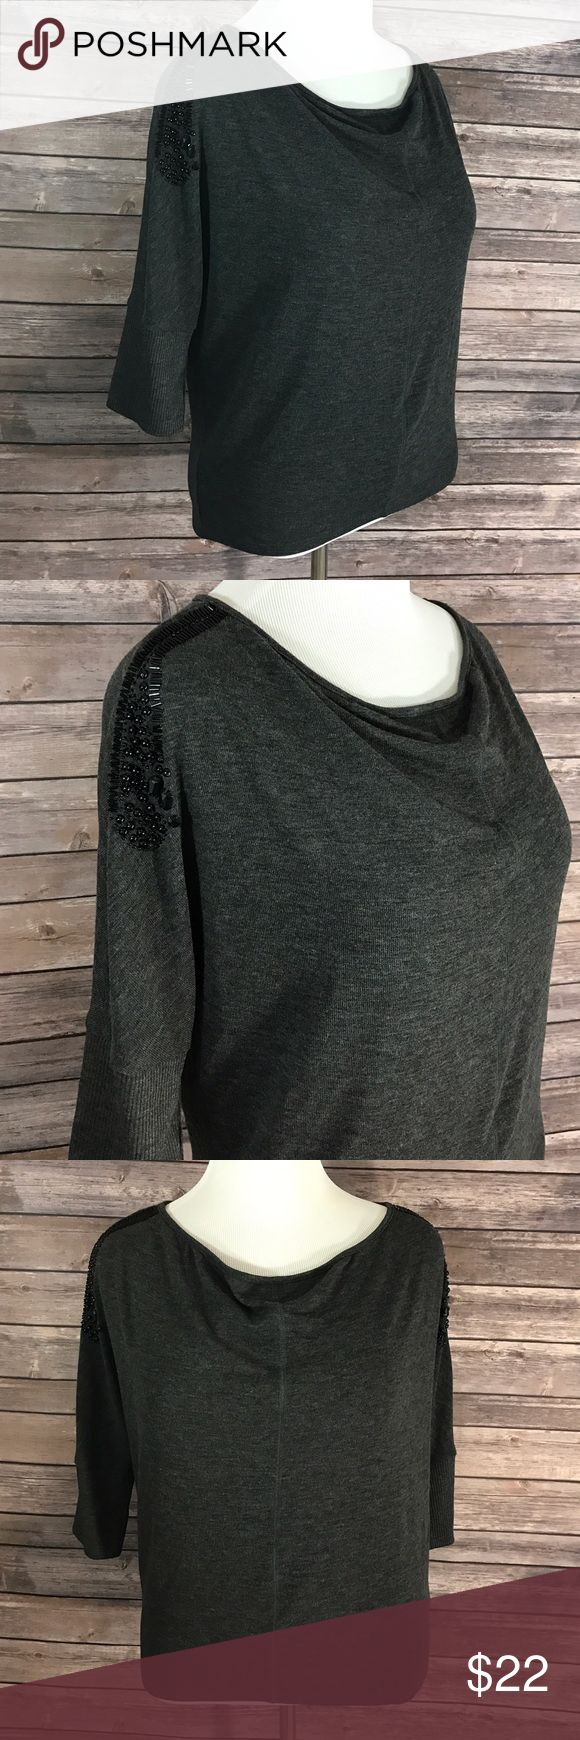 NEW Cable & Gauge Petite Size Large Womens Sweater Measurements: (in inches) -Underarm to underarm: 20 - Length: 27 New with tags. Cable & Gauge Sweaters Cowl & Turtlenecks